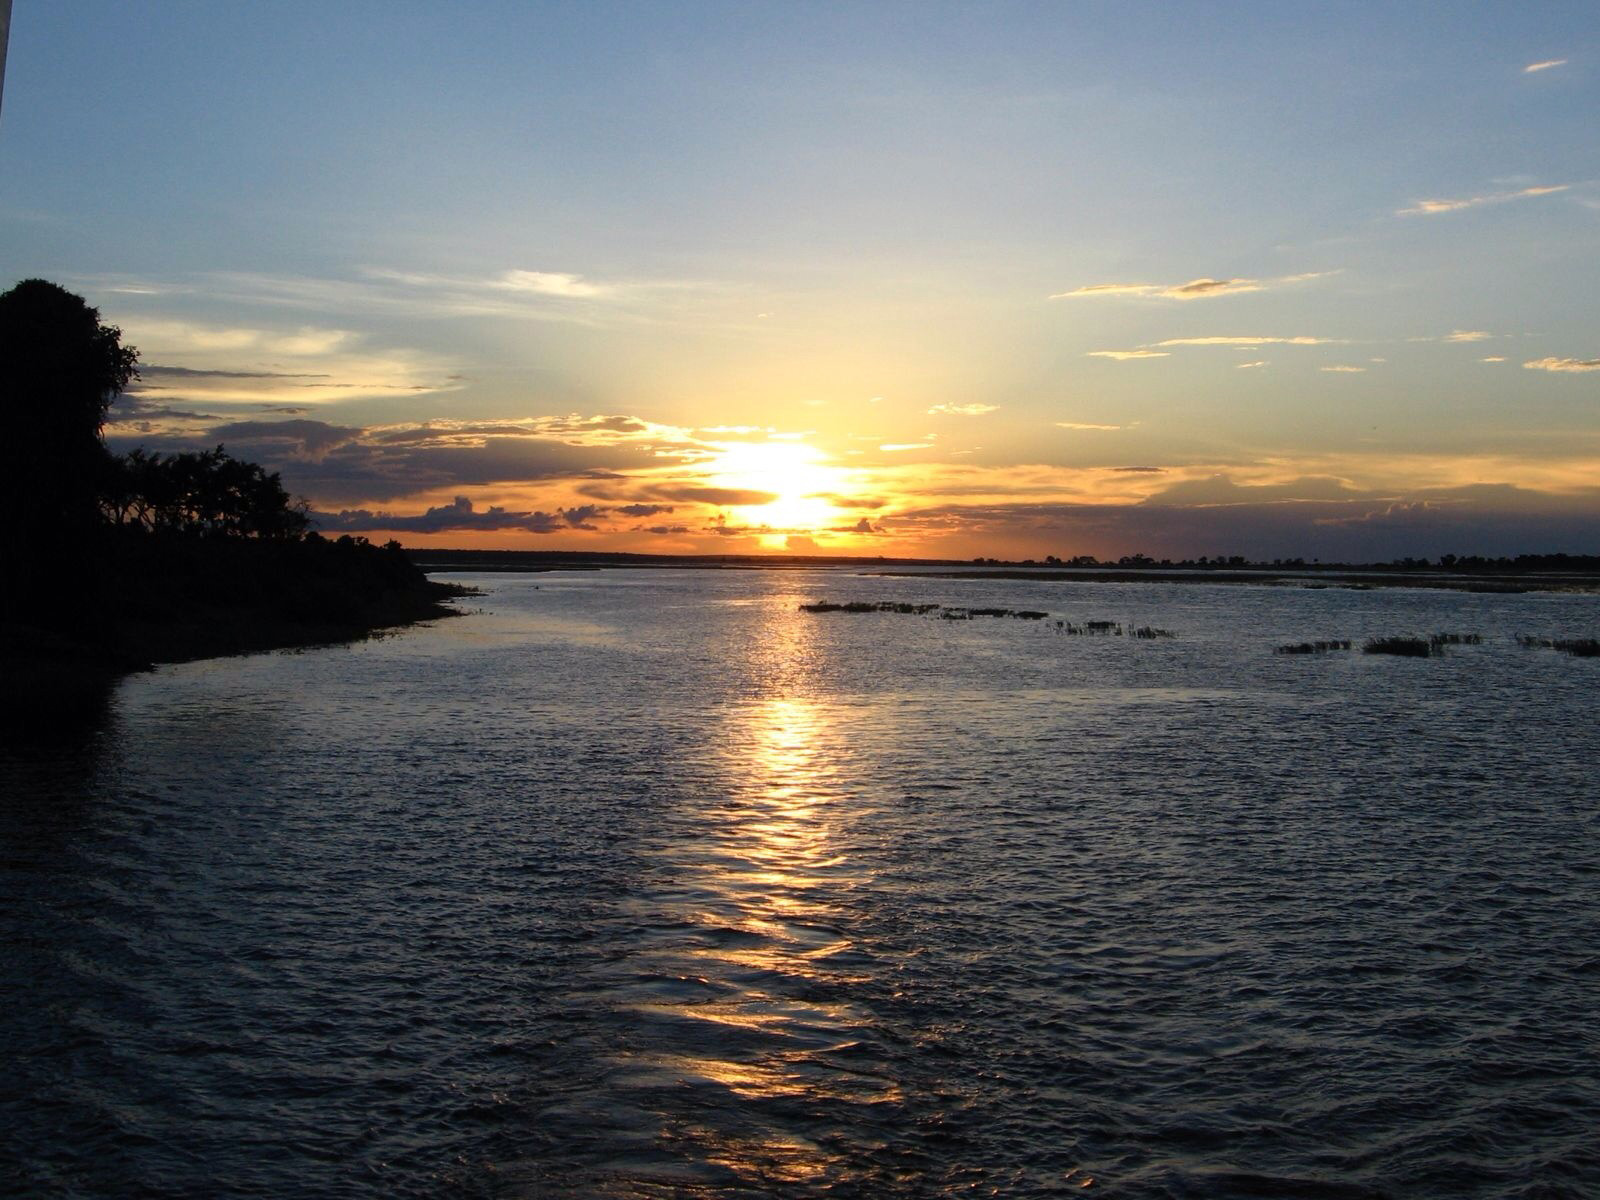 Sunset in Zambia, Elisheva Danan